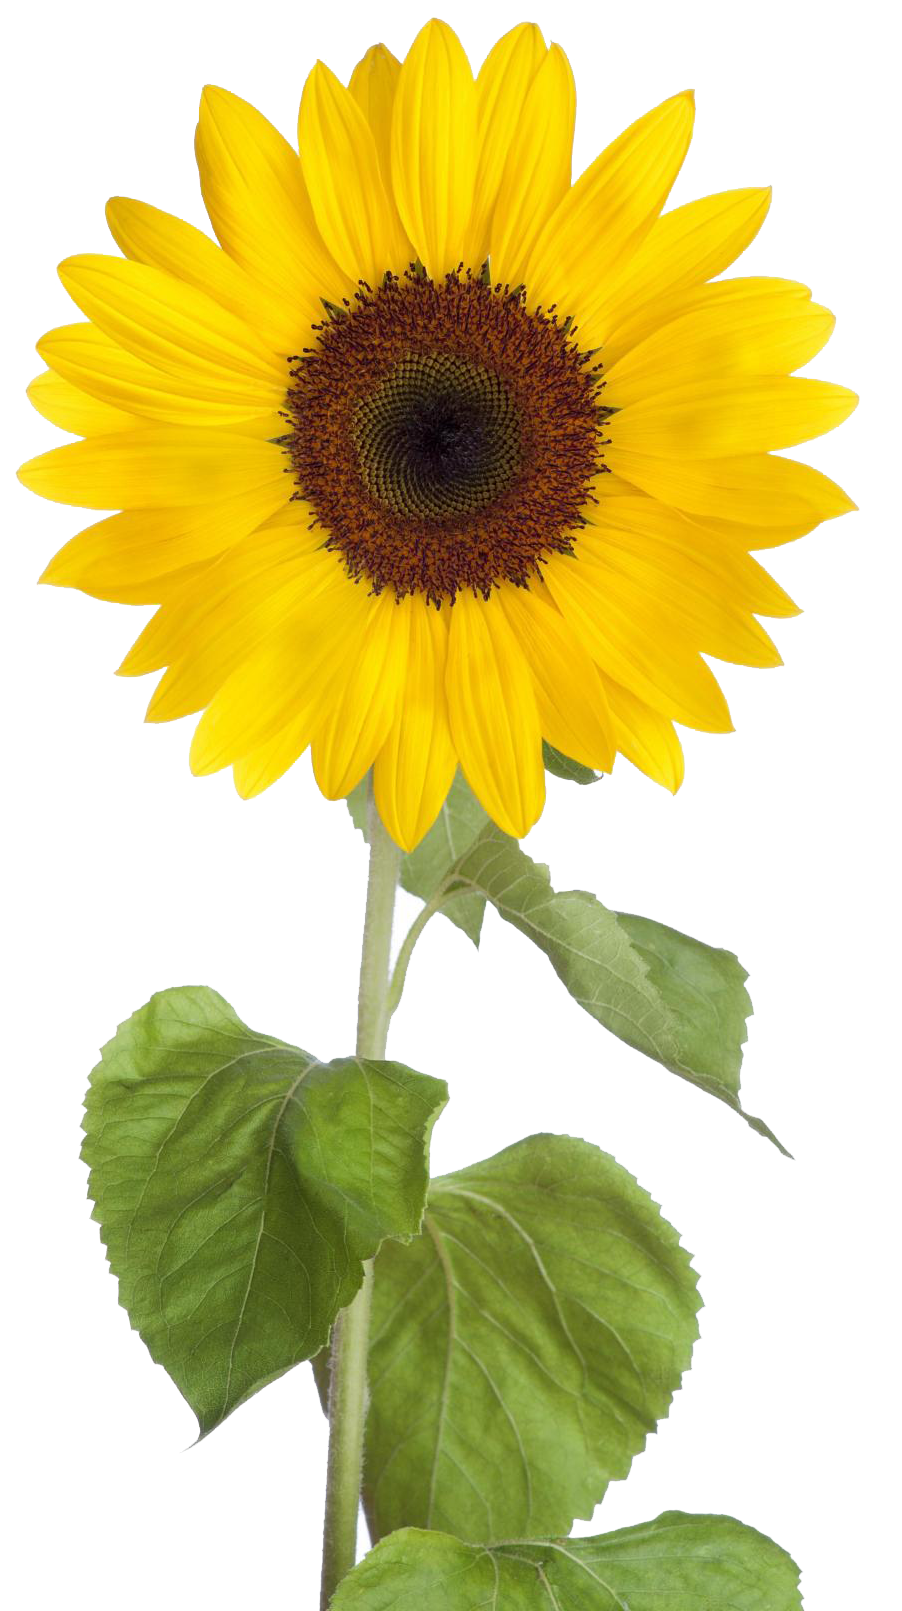 Free Download Sunflower Png Images